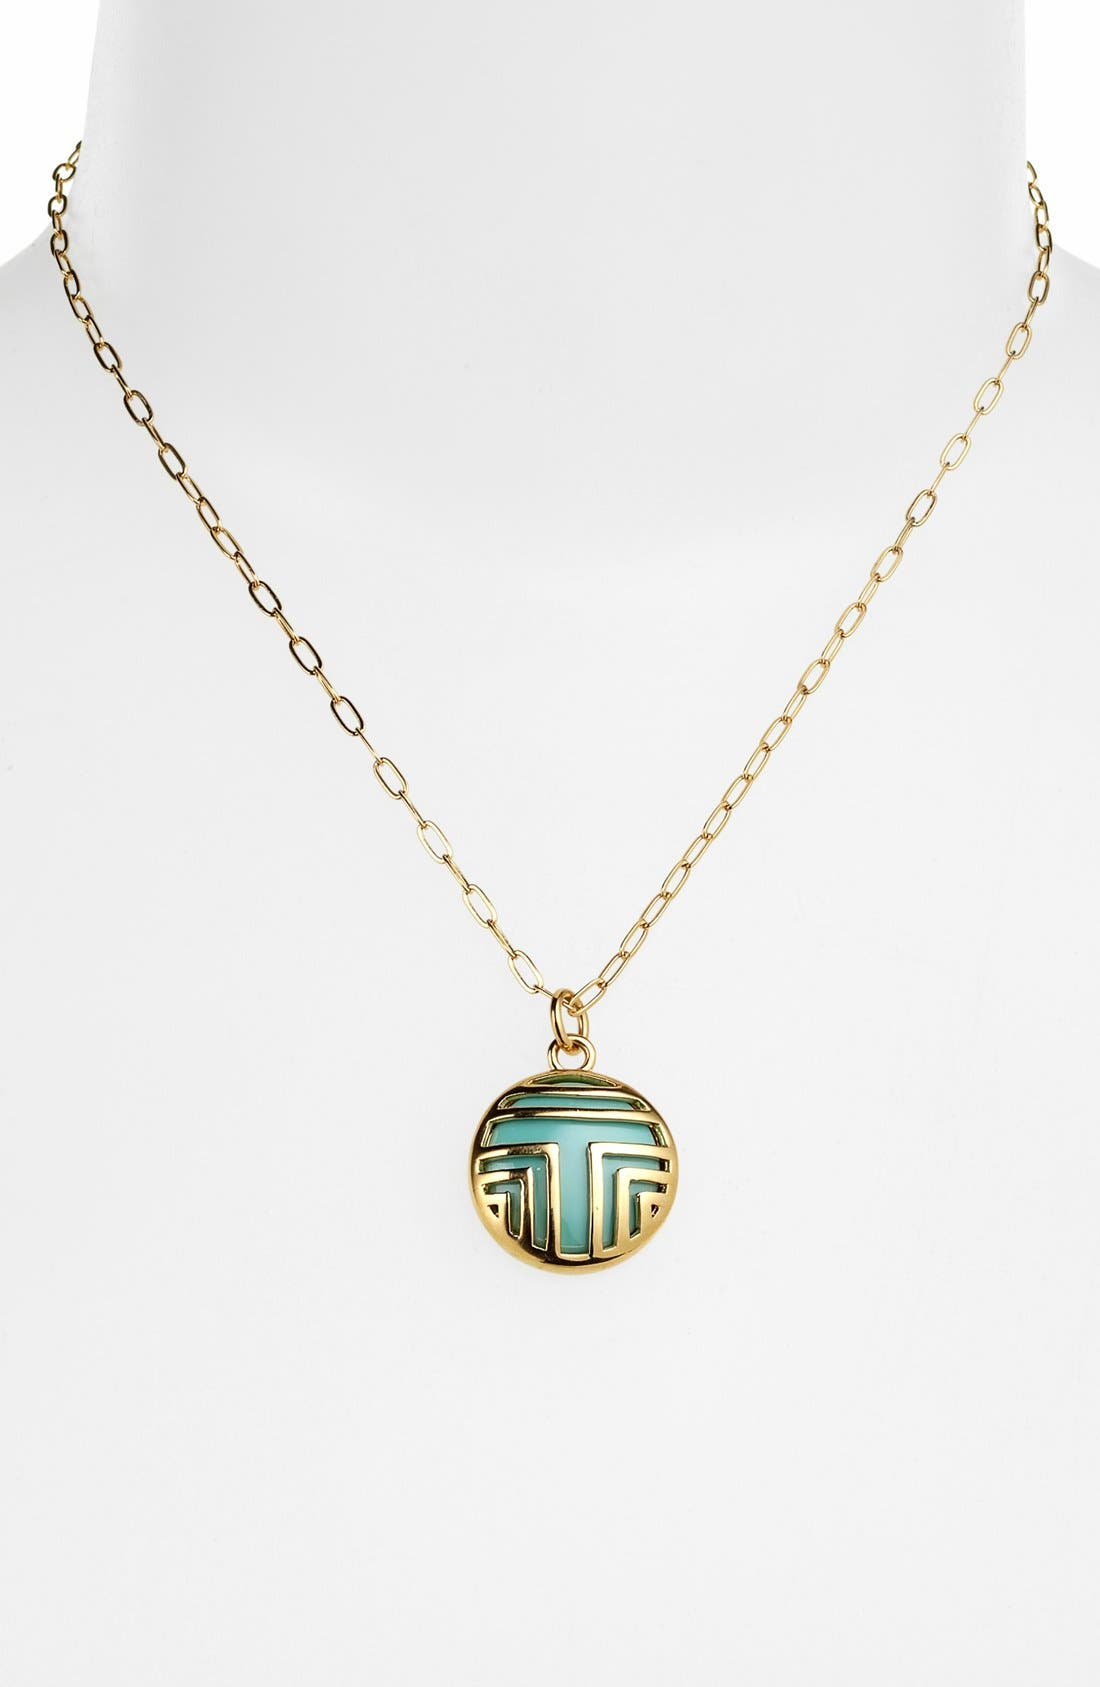 Alternate Image 1 Selected - Tory Burch 'Color Frete' Layered Logo Pendant Necklace